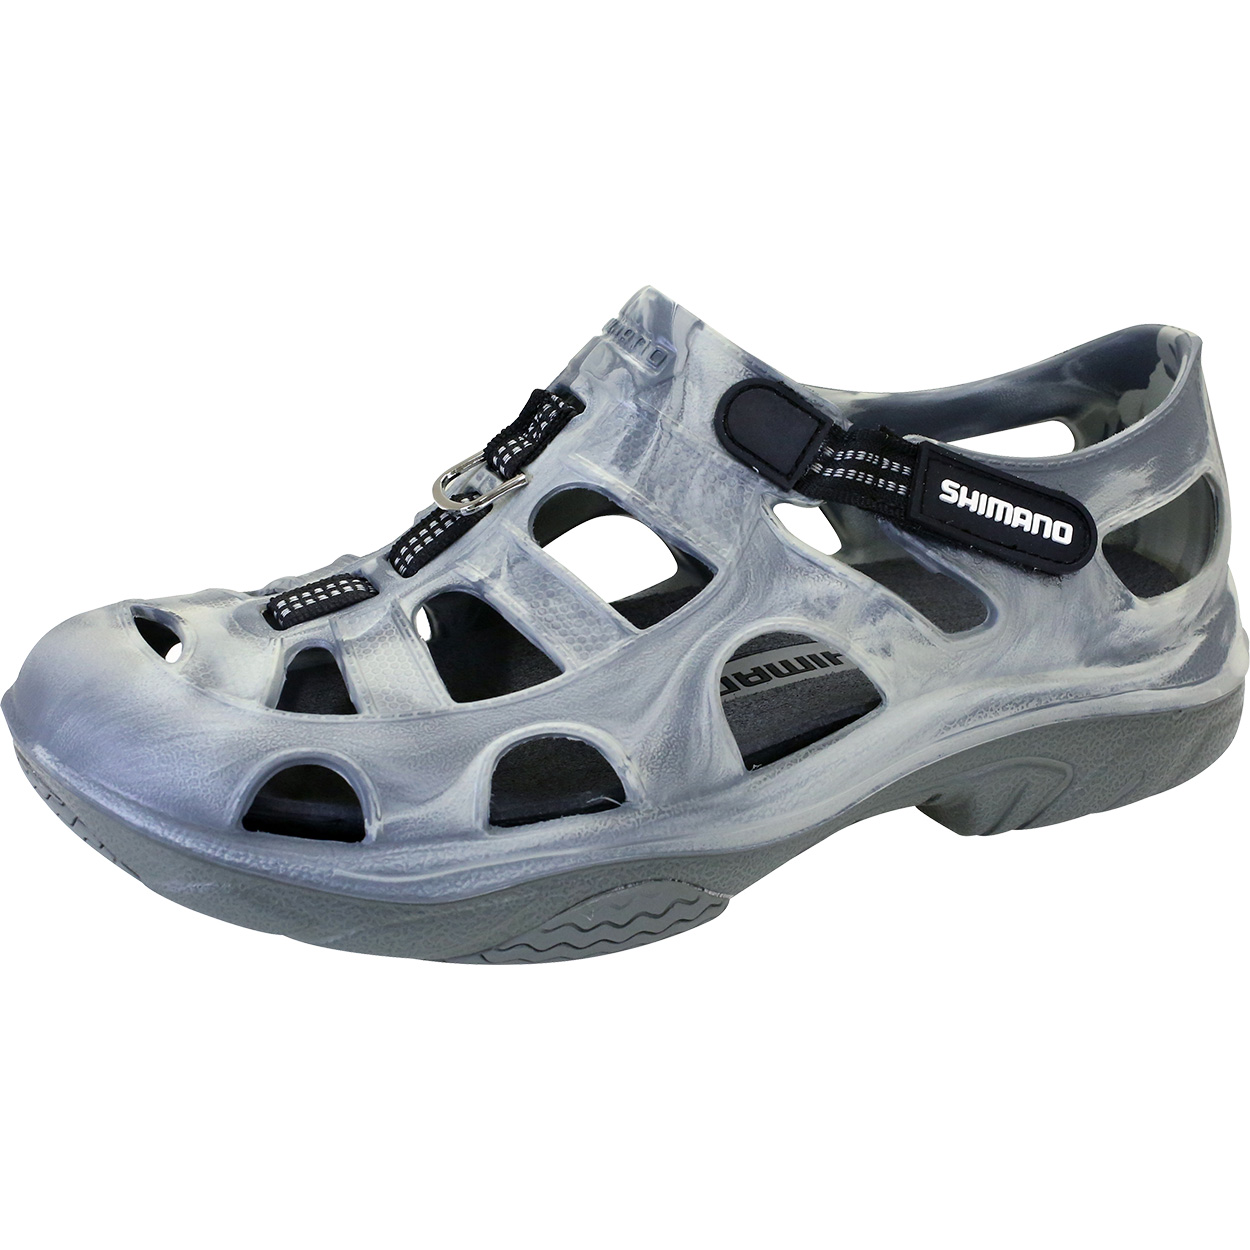 Evair Fishing Shoe 1fea8ebd34c